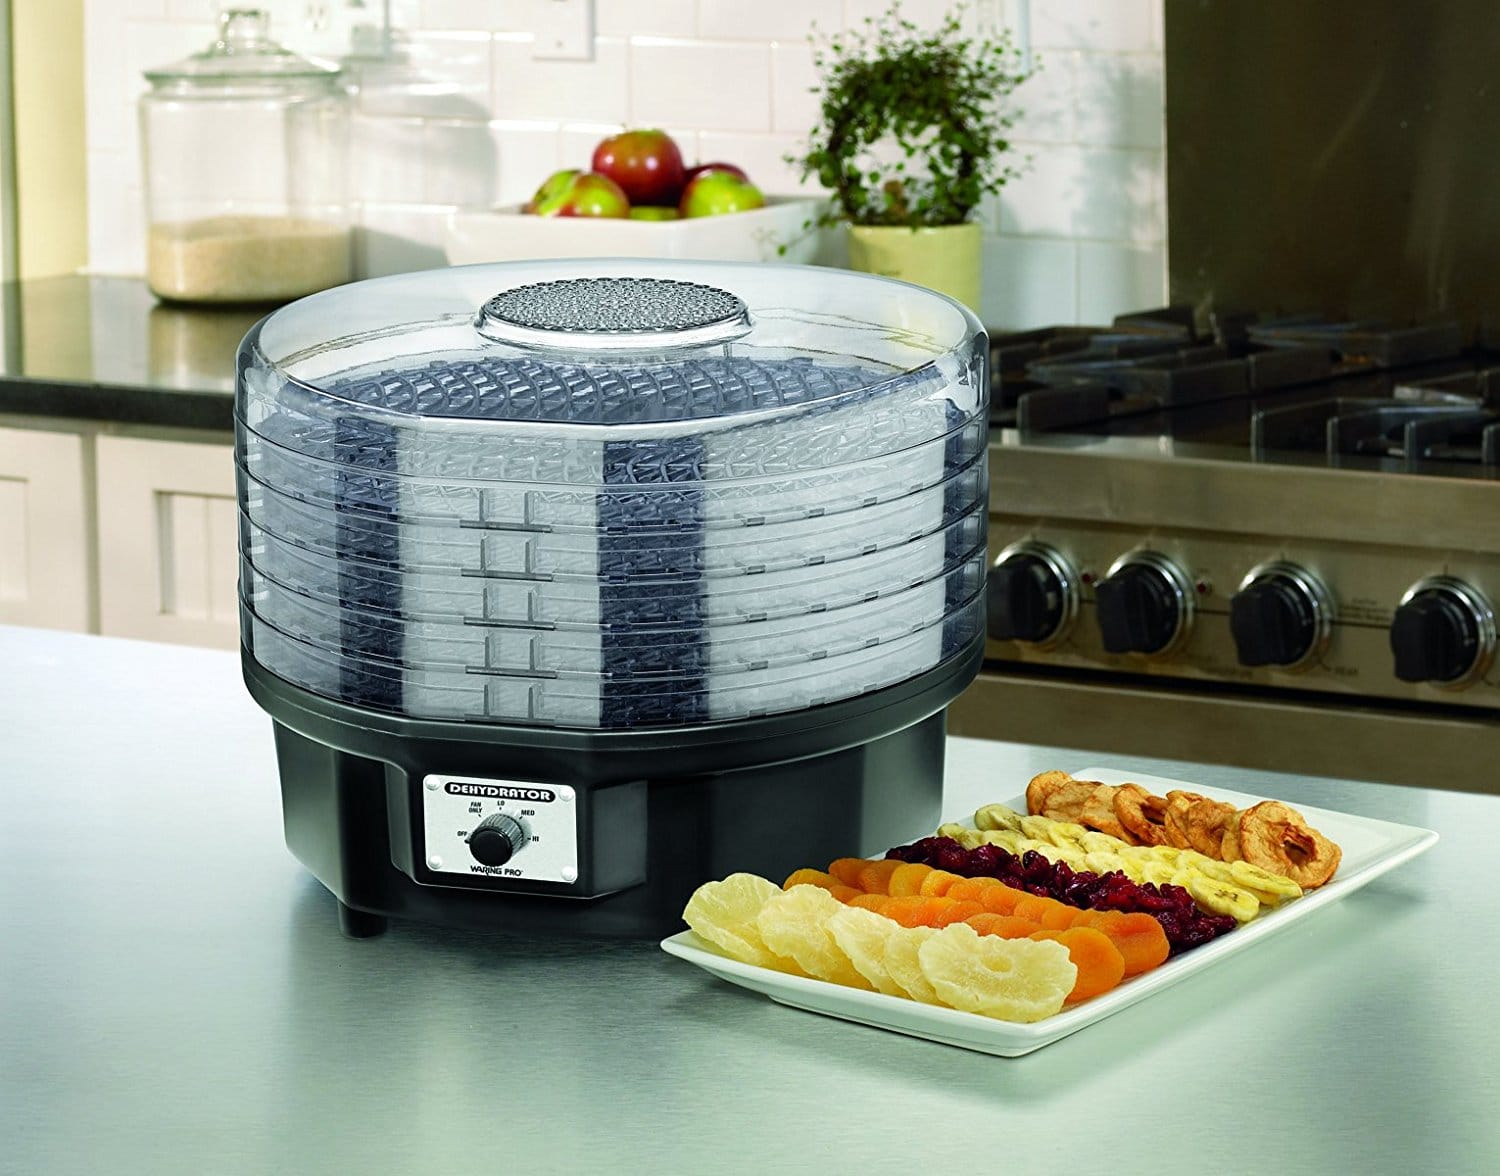 Top 10 Best Food Dehydrators in 2018 - Review - HQReview